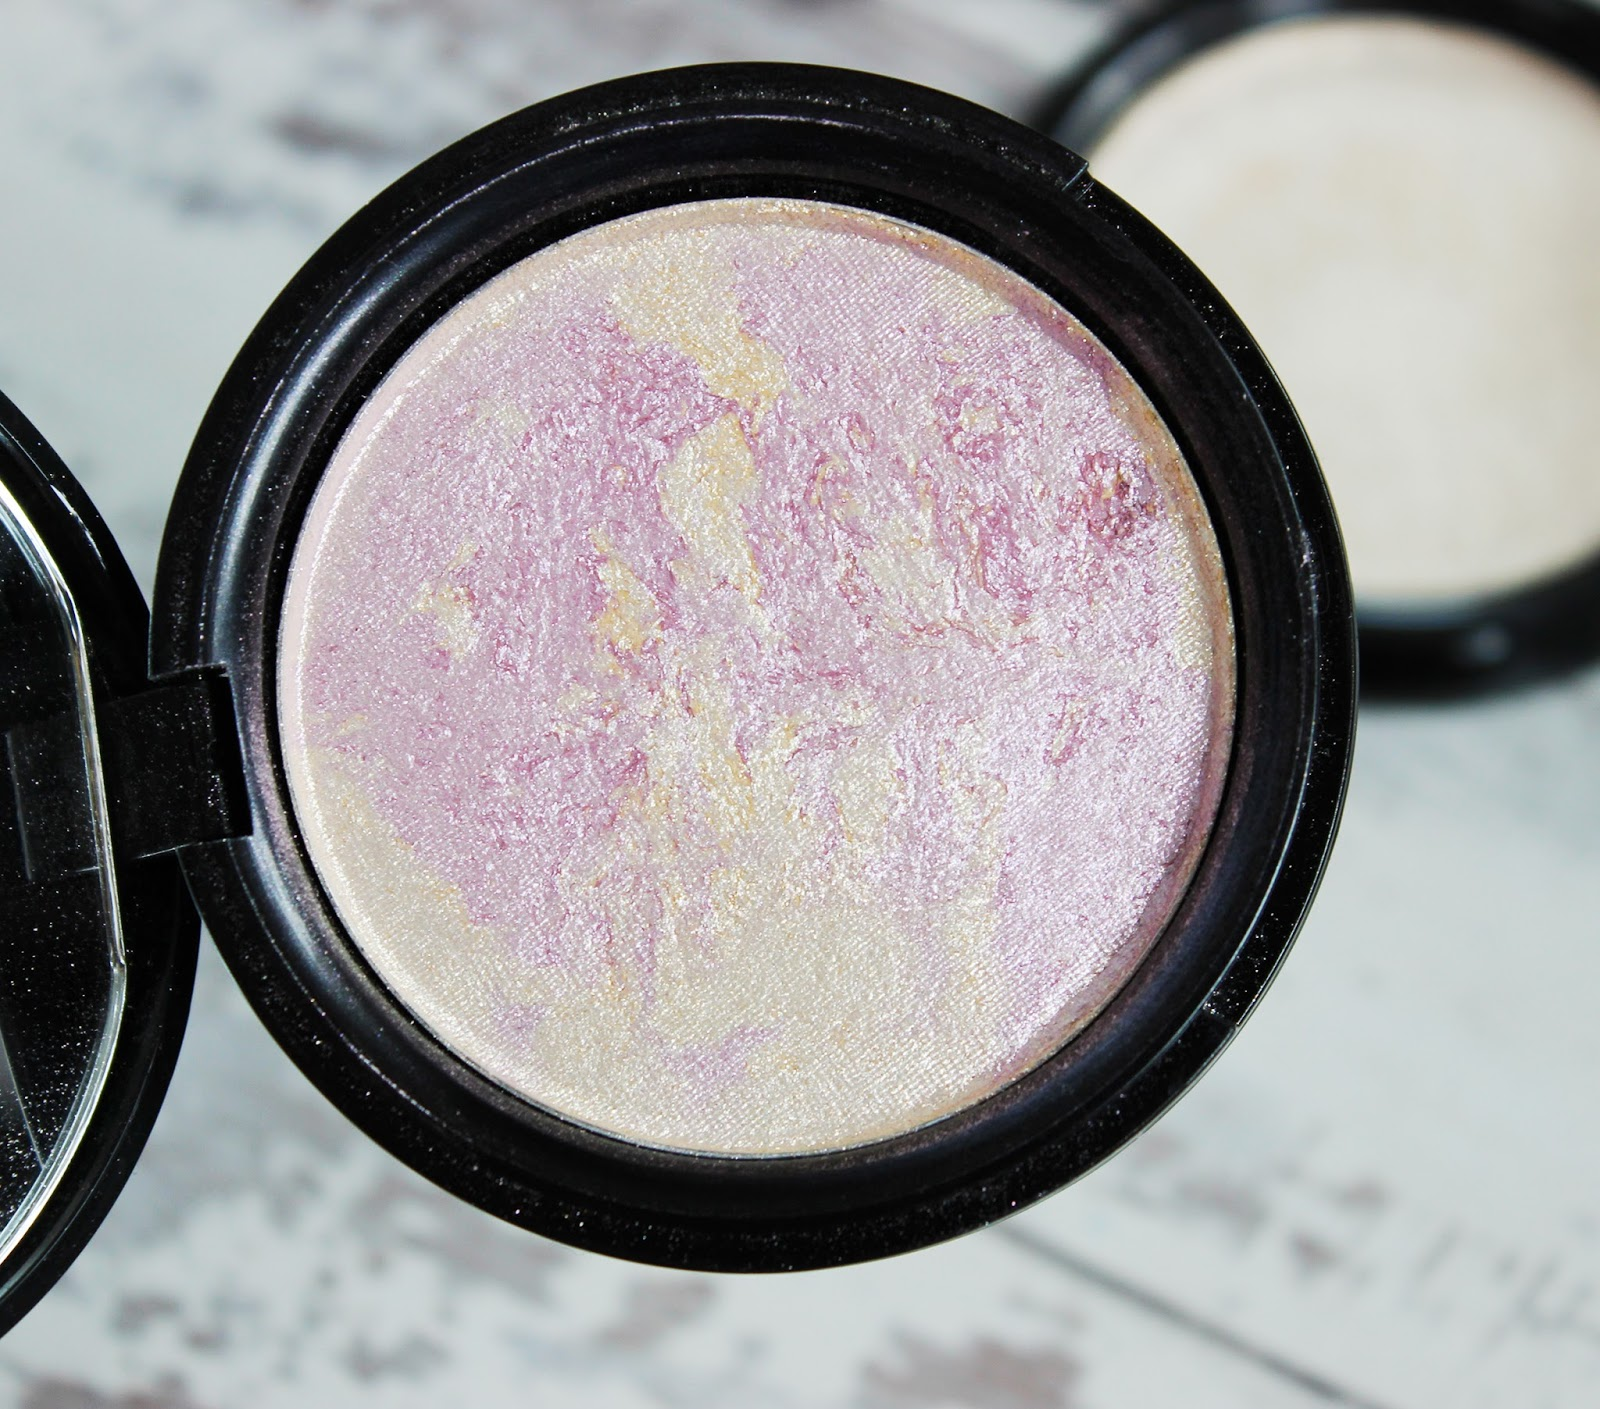 Phee's Makeup shop Rose Quartz Glow highlighter review